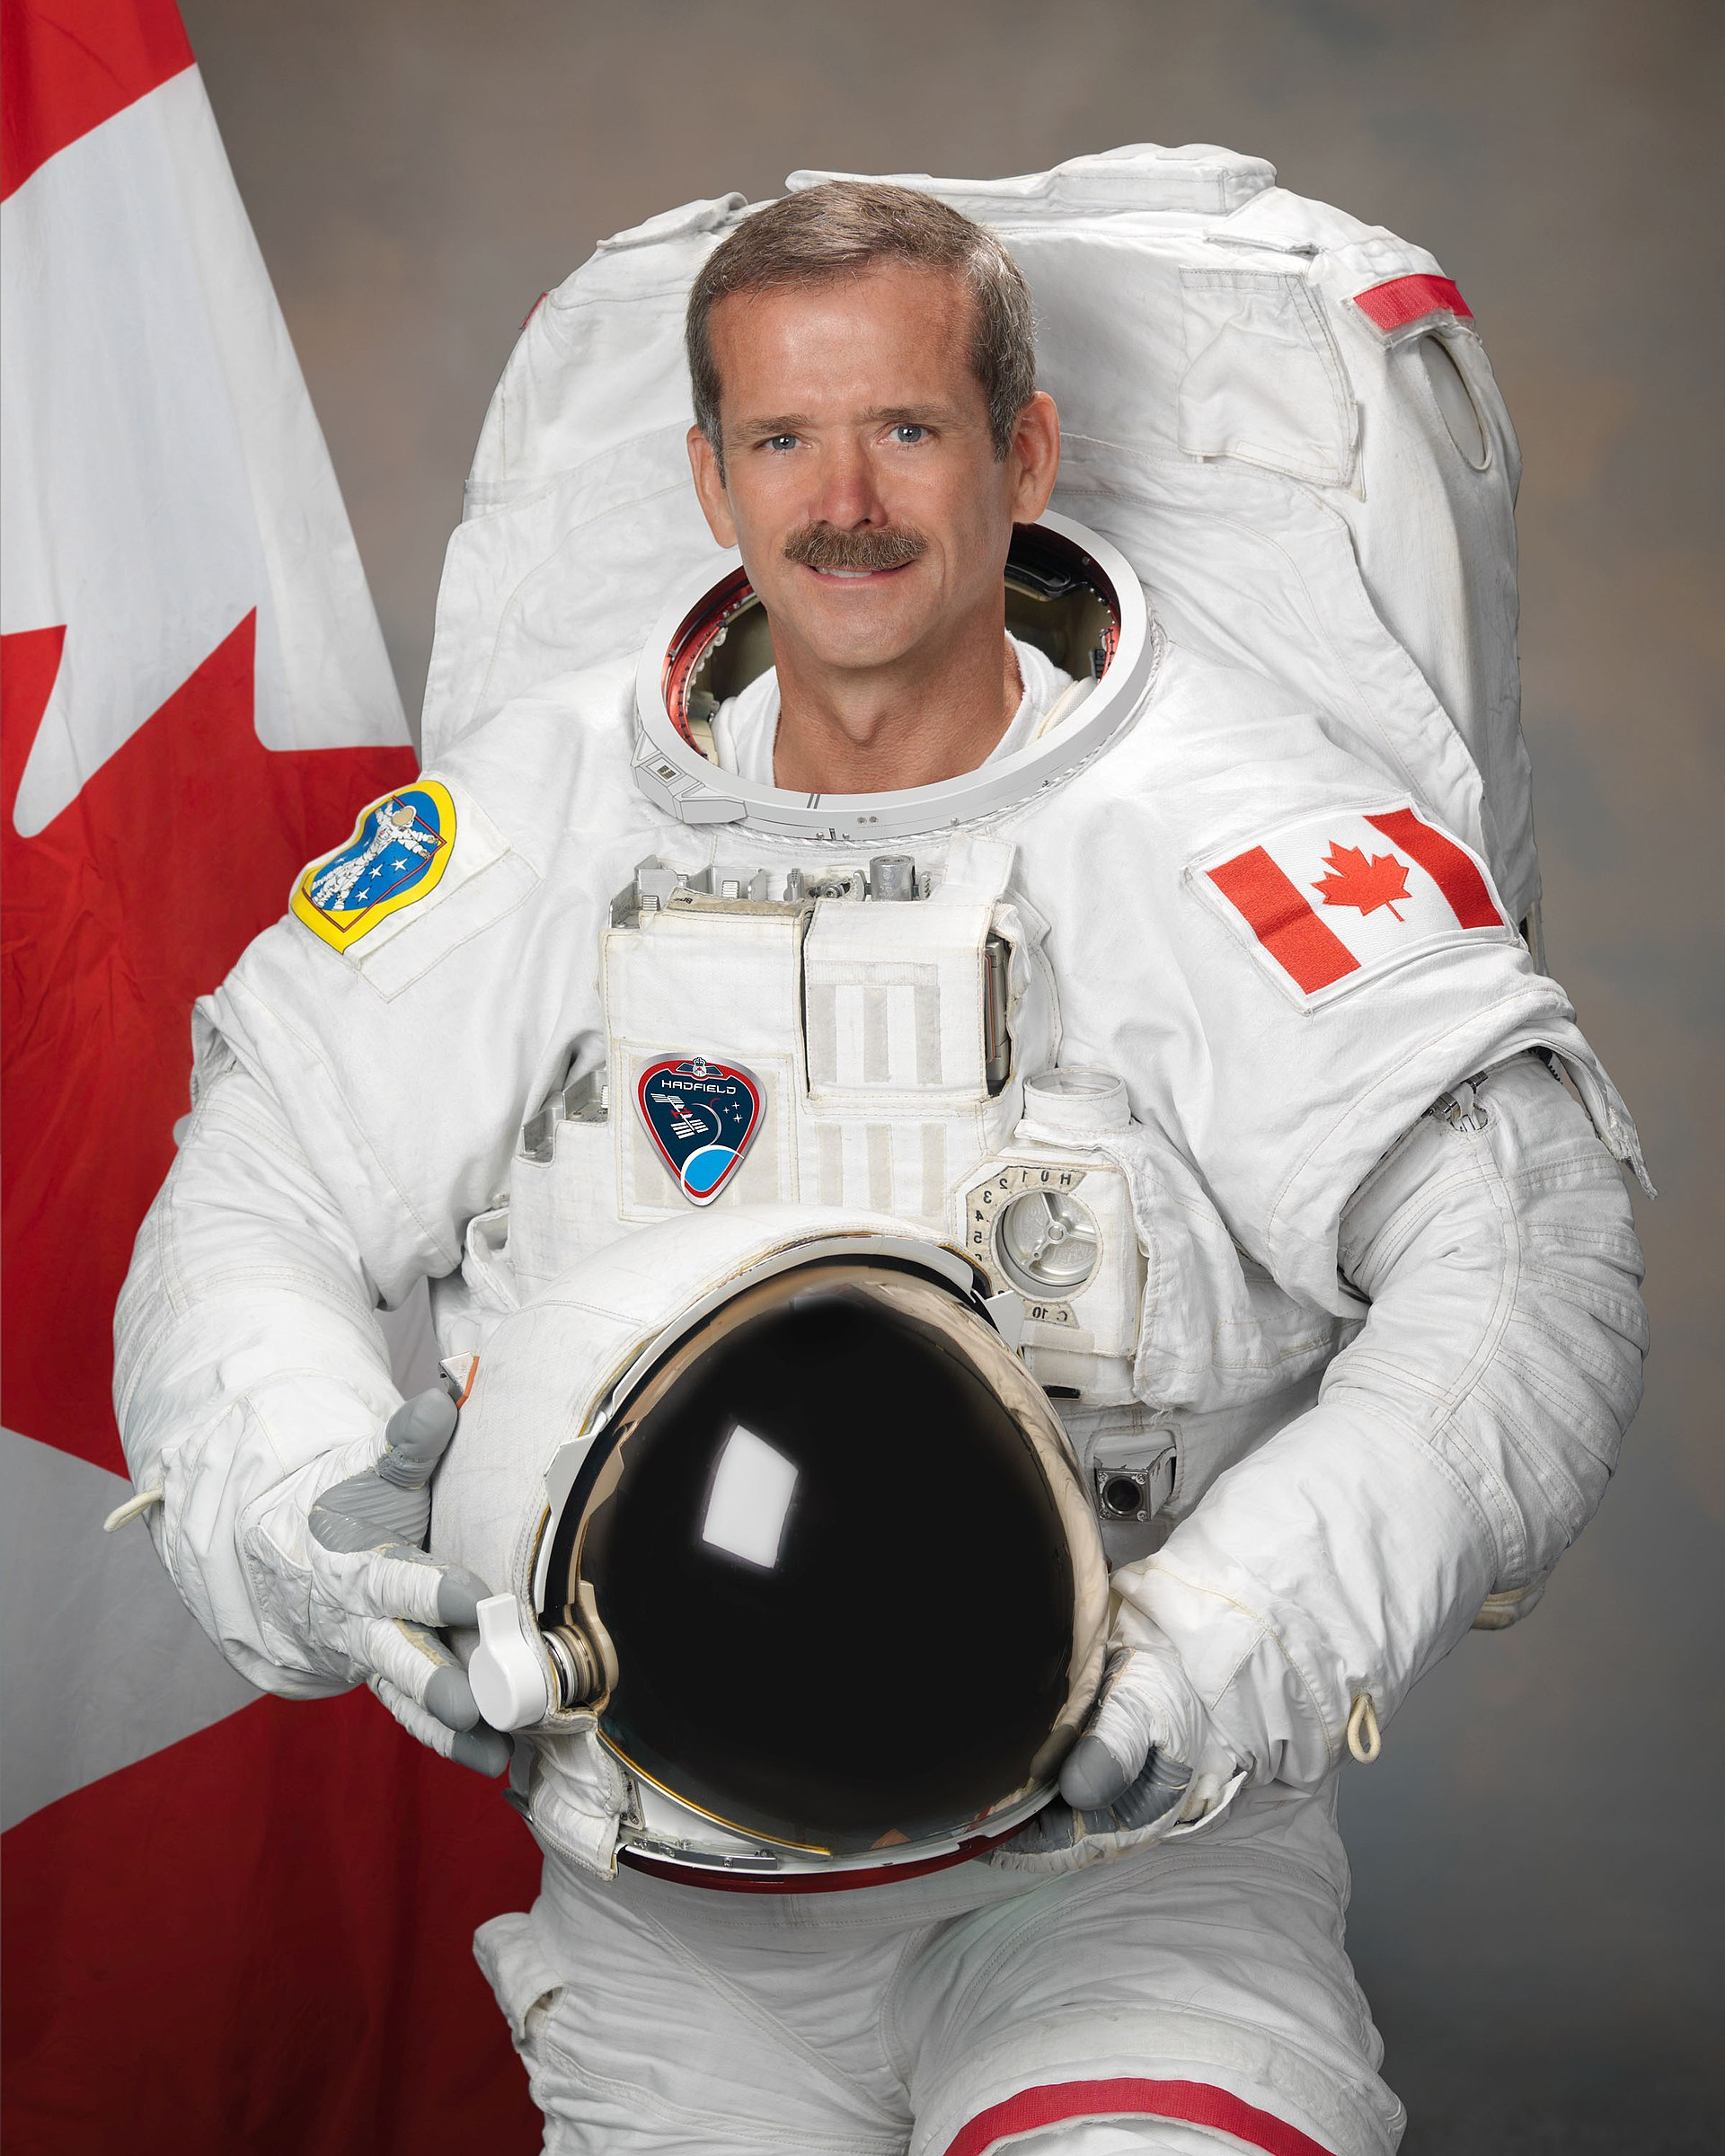 canadian space agency astronaut selection - photo #41